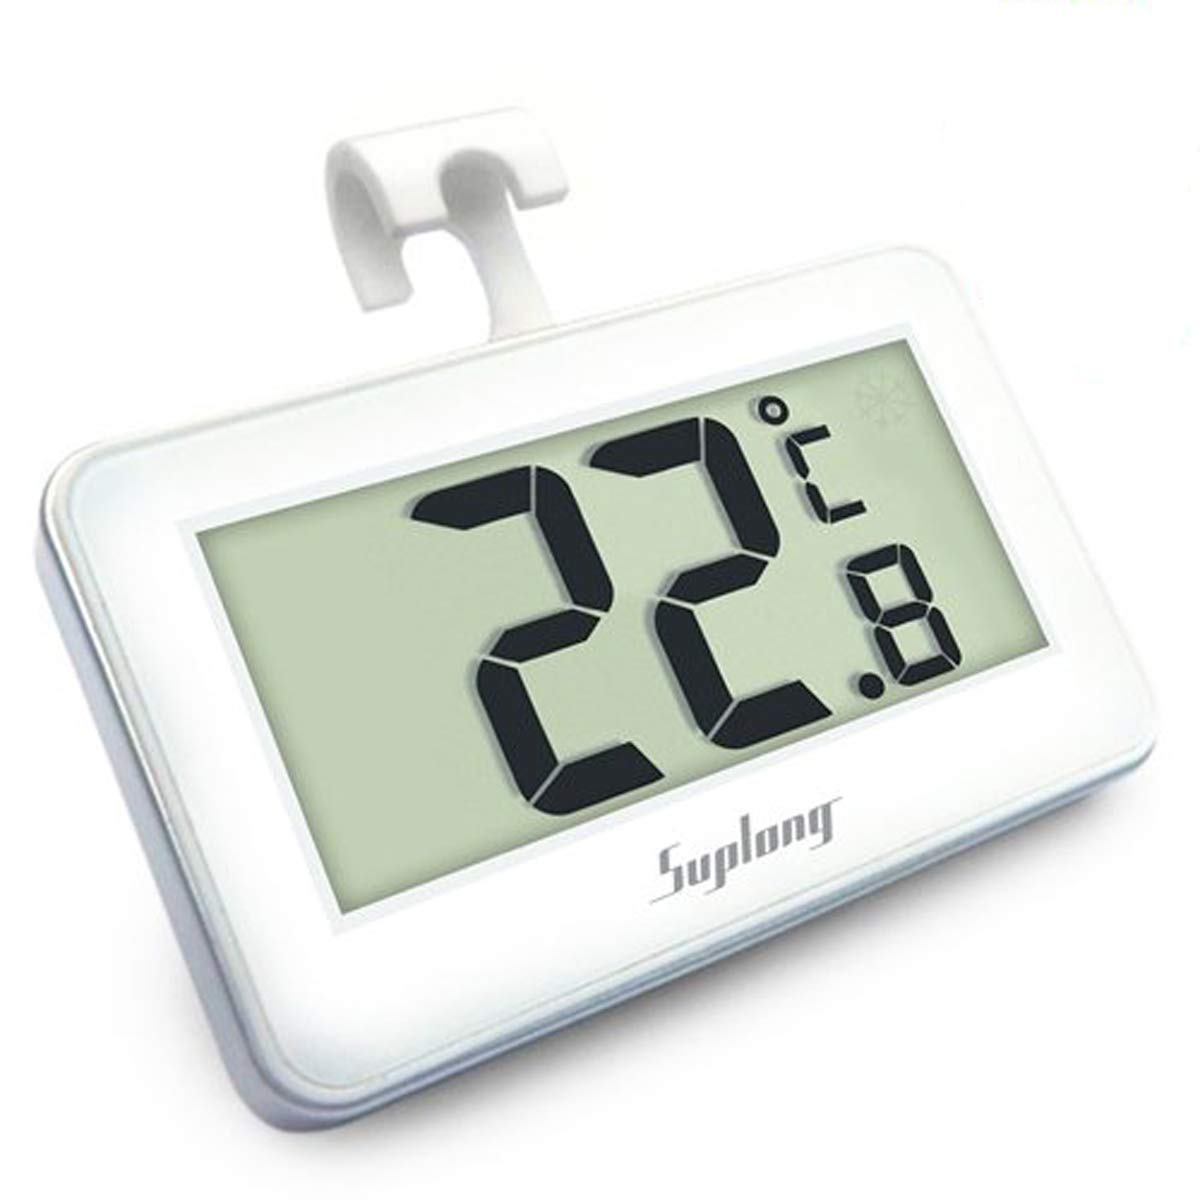 Fridge Thermometer Digital Refrigerator Thermometer, Suplong Digital Waterproof Fridge Freezer Thermometer With Easy to Read LCD Display AIGUMI